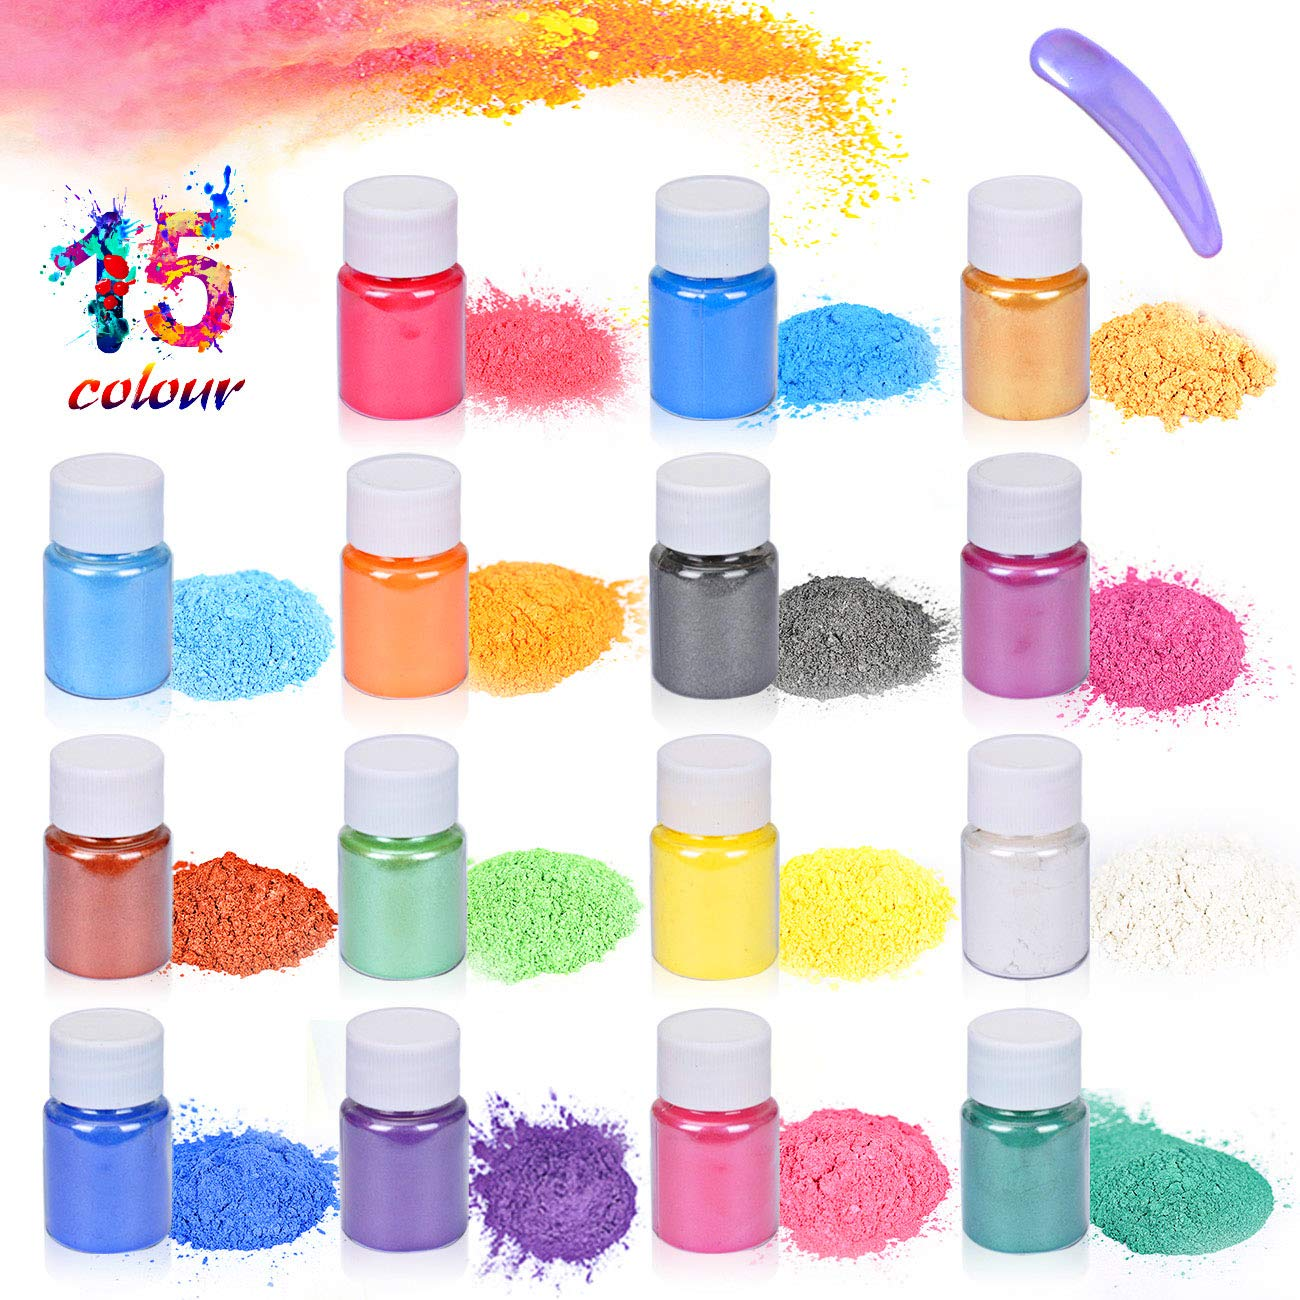 Epoxy Resin Dye-Mica Powder-15 Natural Powder Pigments-Soap Dye-Hand Soap Making Supplies-Eyeshadow and Lips Makeup Dye -Slime Pigment-Bath Bomb Colorant-Nail Art-DIY Slime-Adhesive Pigments